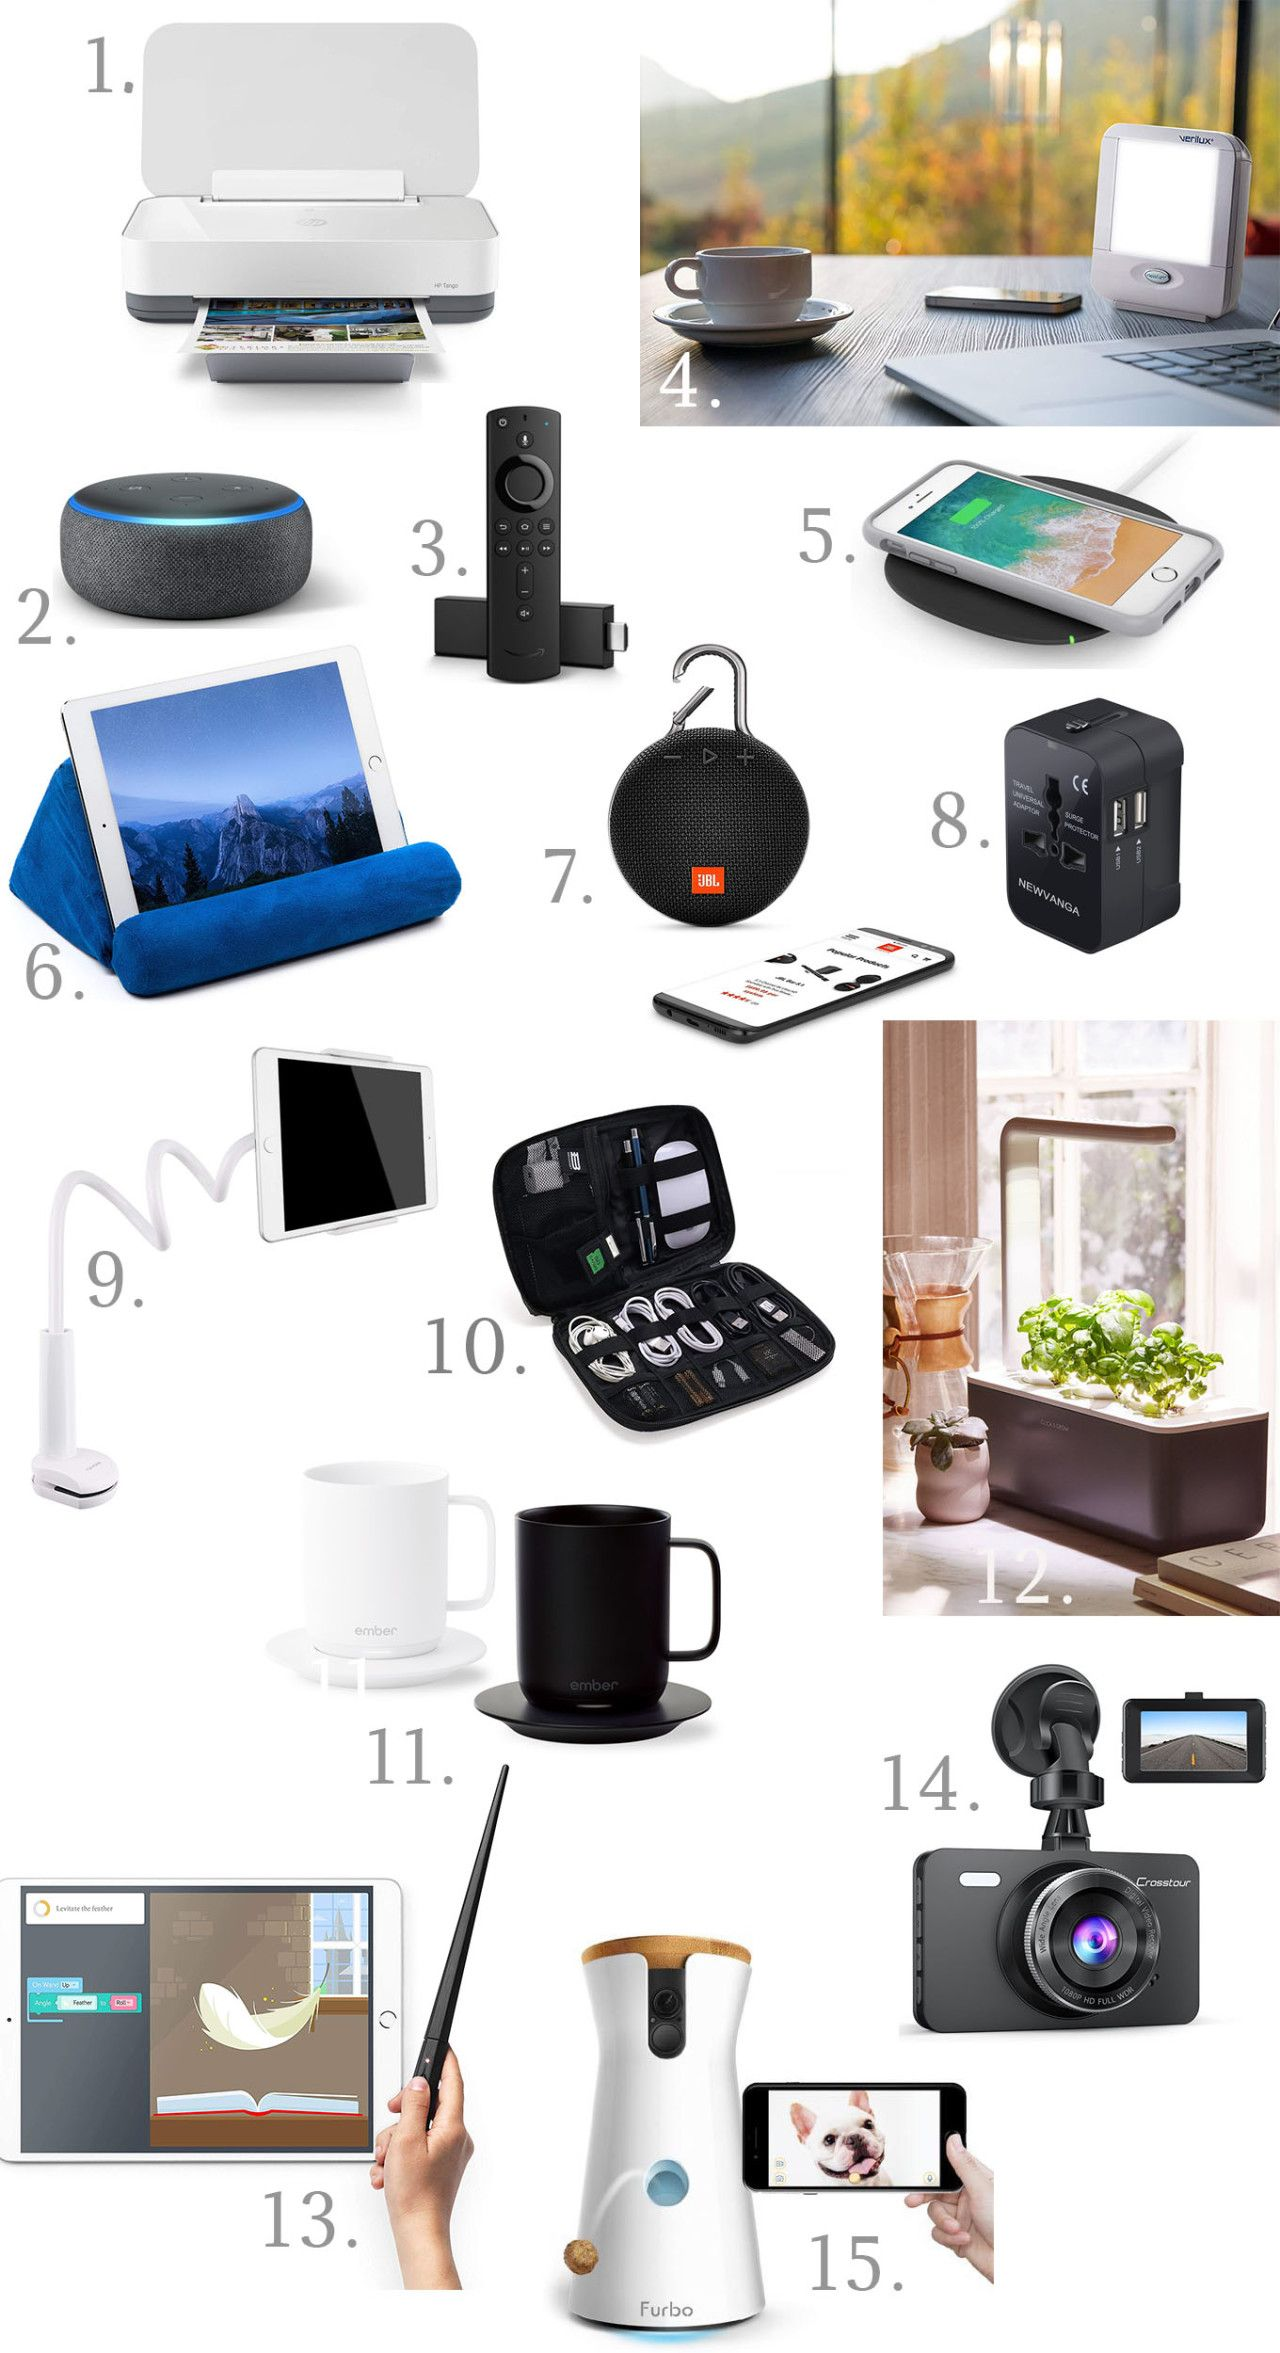 15 Best Tech Gifts For 2018 Ridgely S Radar Tech Gifts For Dad Cool Tech Gifts Gifts For Tech Lovers